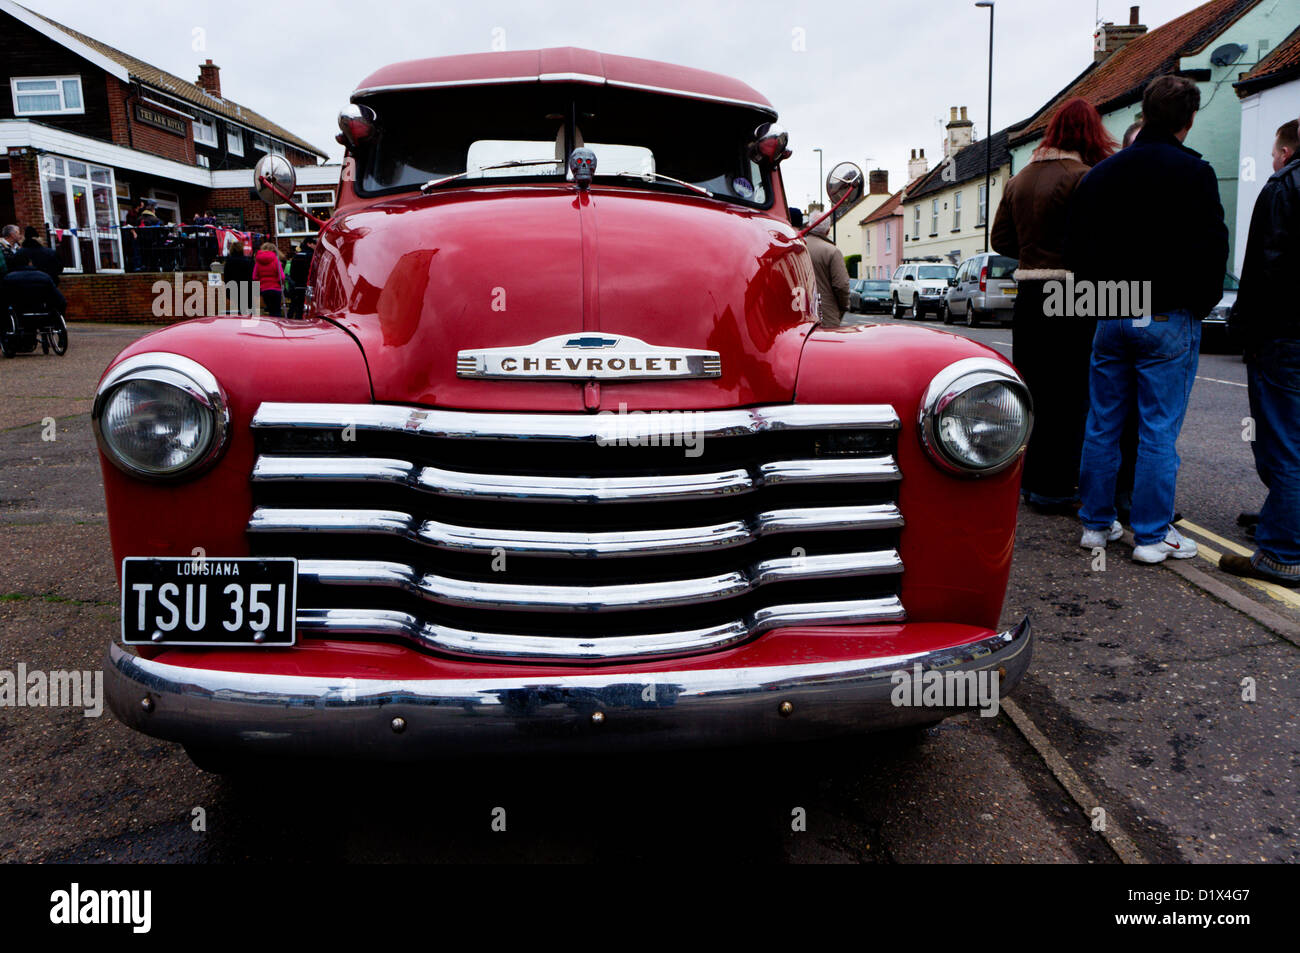 A Chevrolet Taking Part In The Brass Monkey Run 2012 From Brandon In Stock Photo Alamy